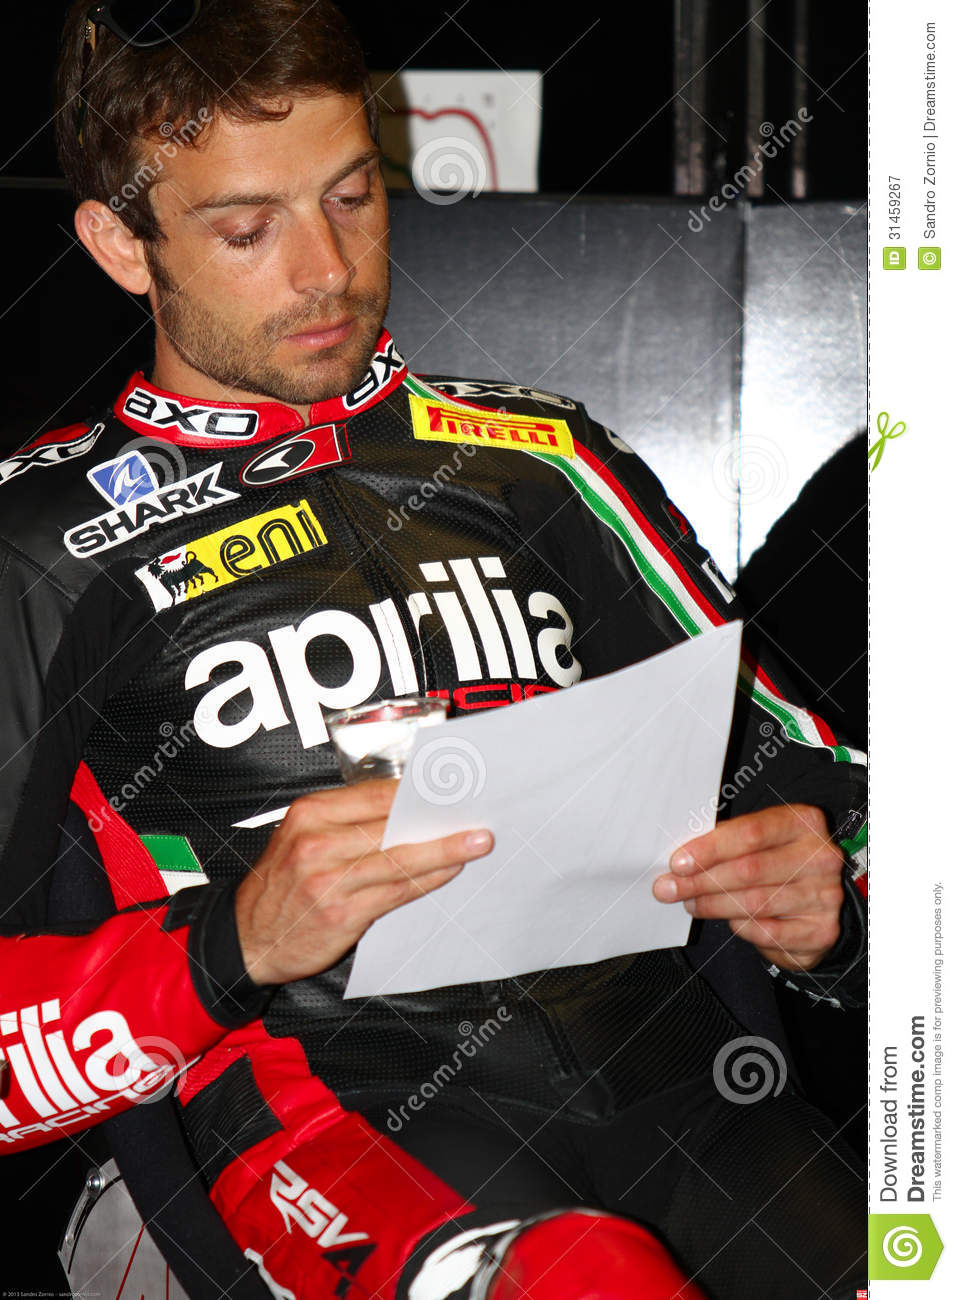 Sylvain Guintoli #50 on Aprilia RSV4 1000 Factory with Aprilia Racing Team Superbike WSBK